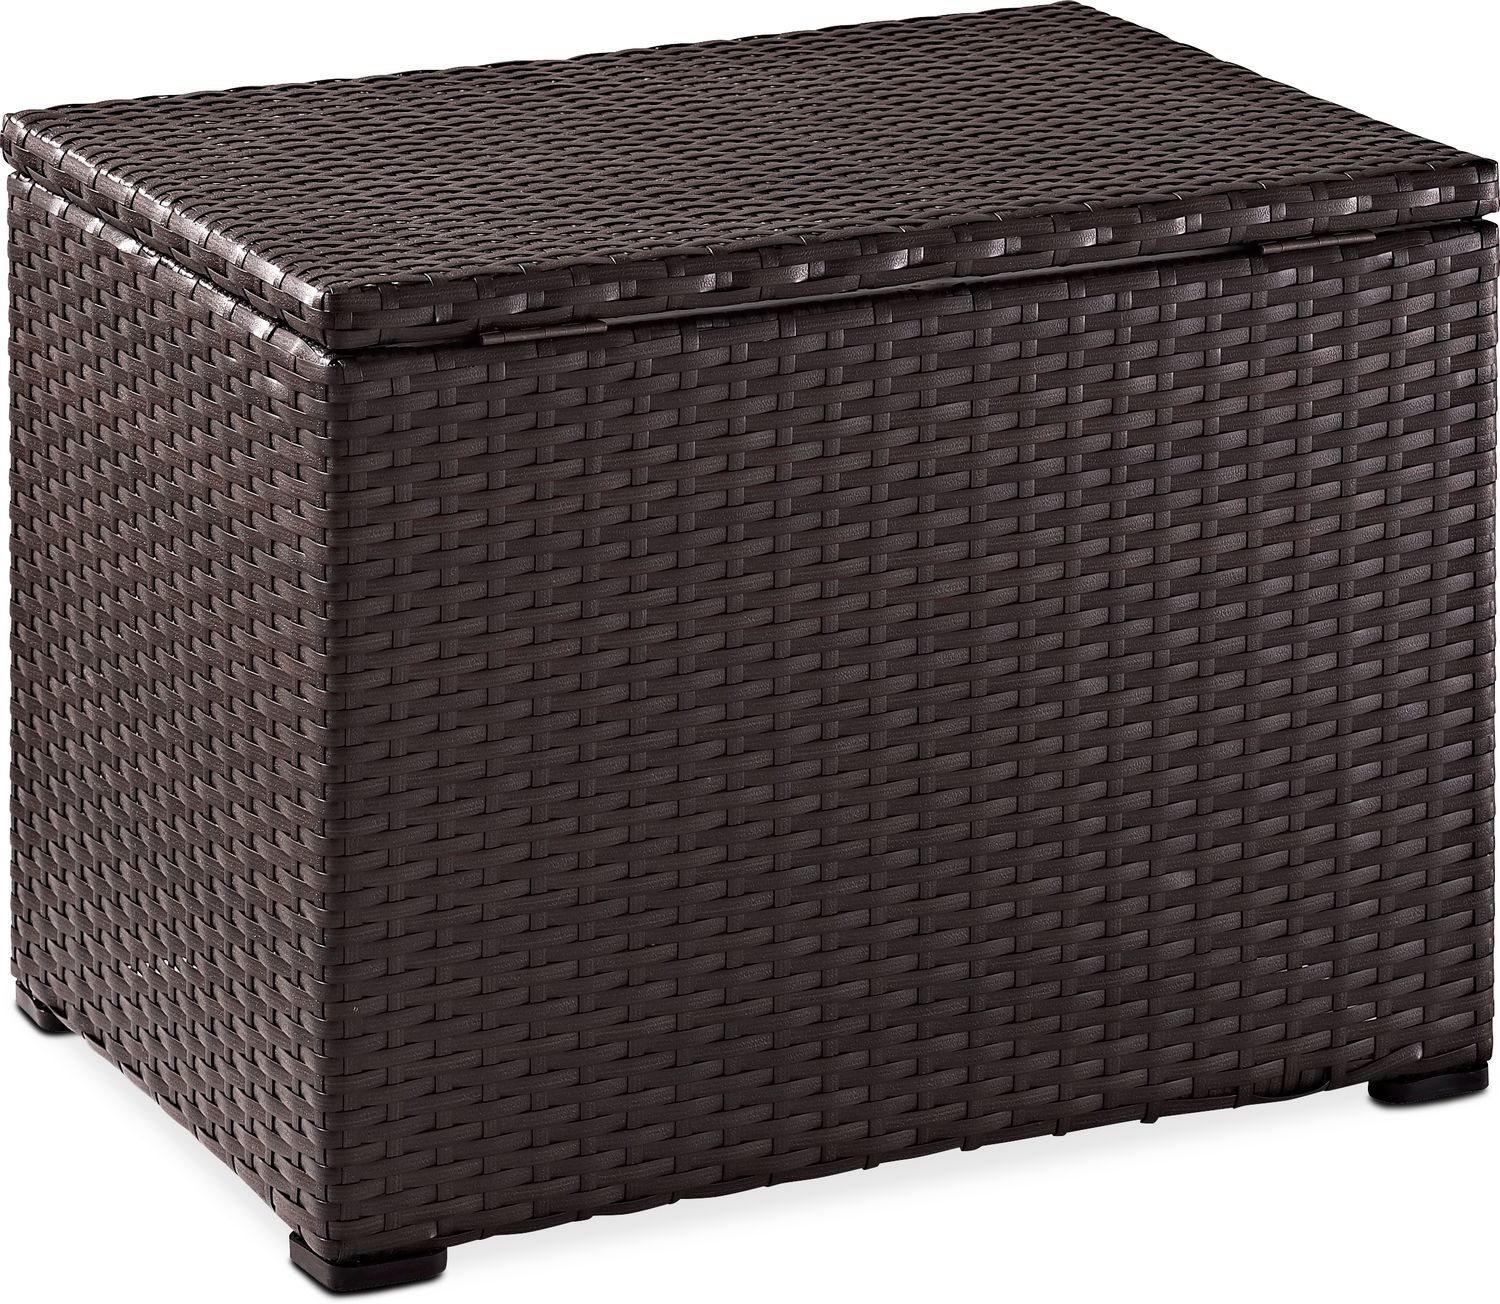 Outdoor Furniture - Aldo Outdoor Cooler - Brown